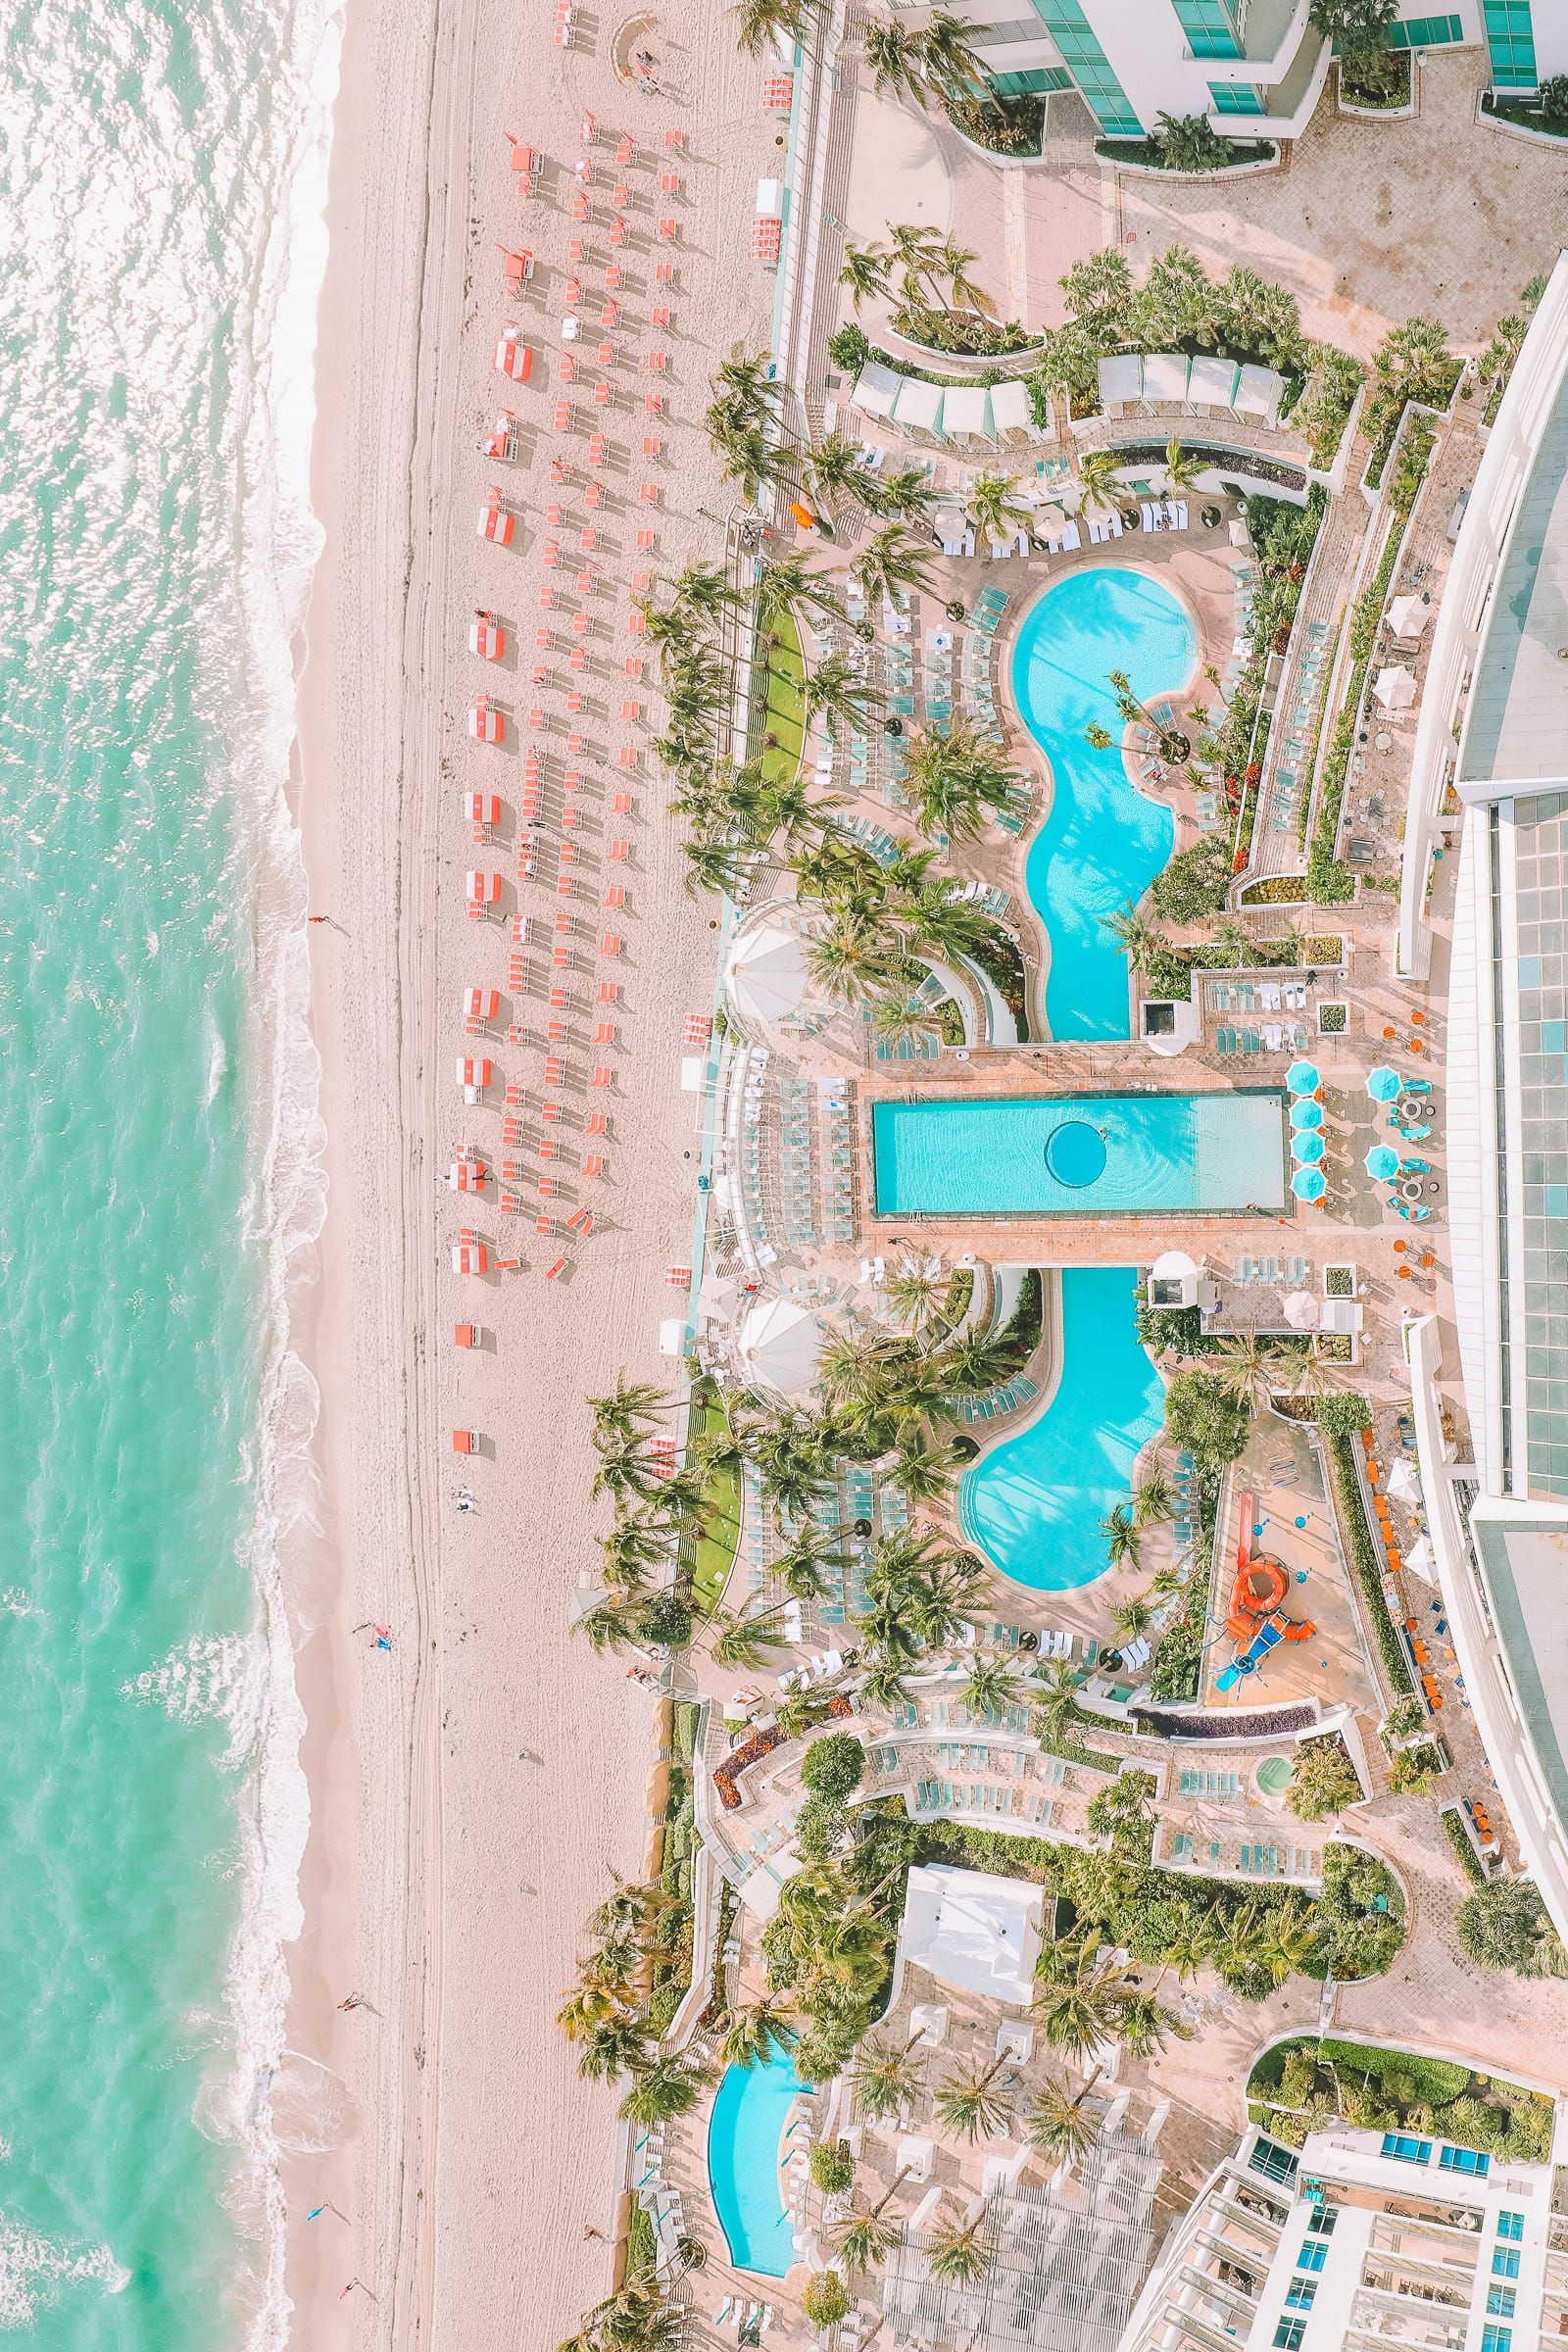 12 Beautiful Places To Visit On The East Coast Usa Fort Lauderdale Things To Do Fort Lauderdale Travel Fort Lauderdale Florida